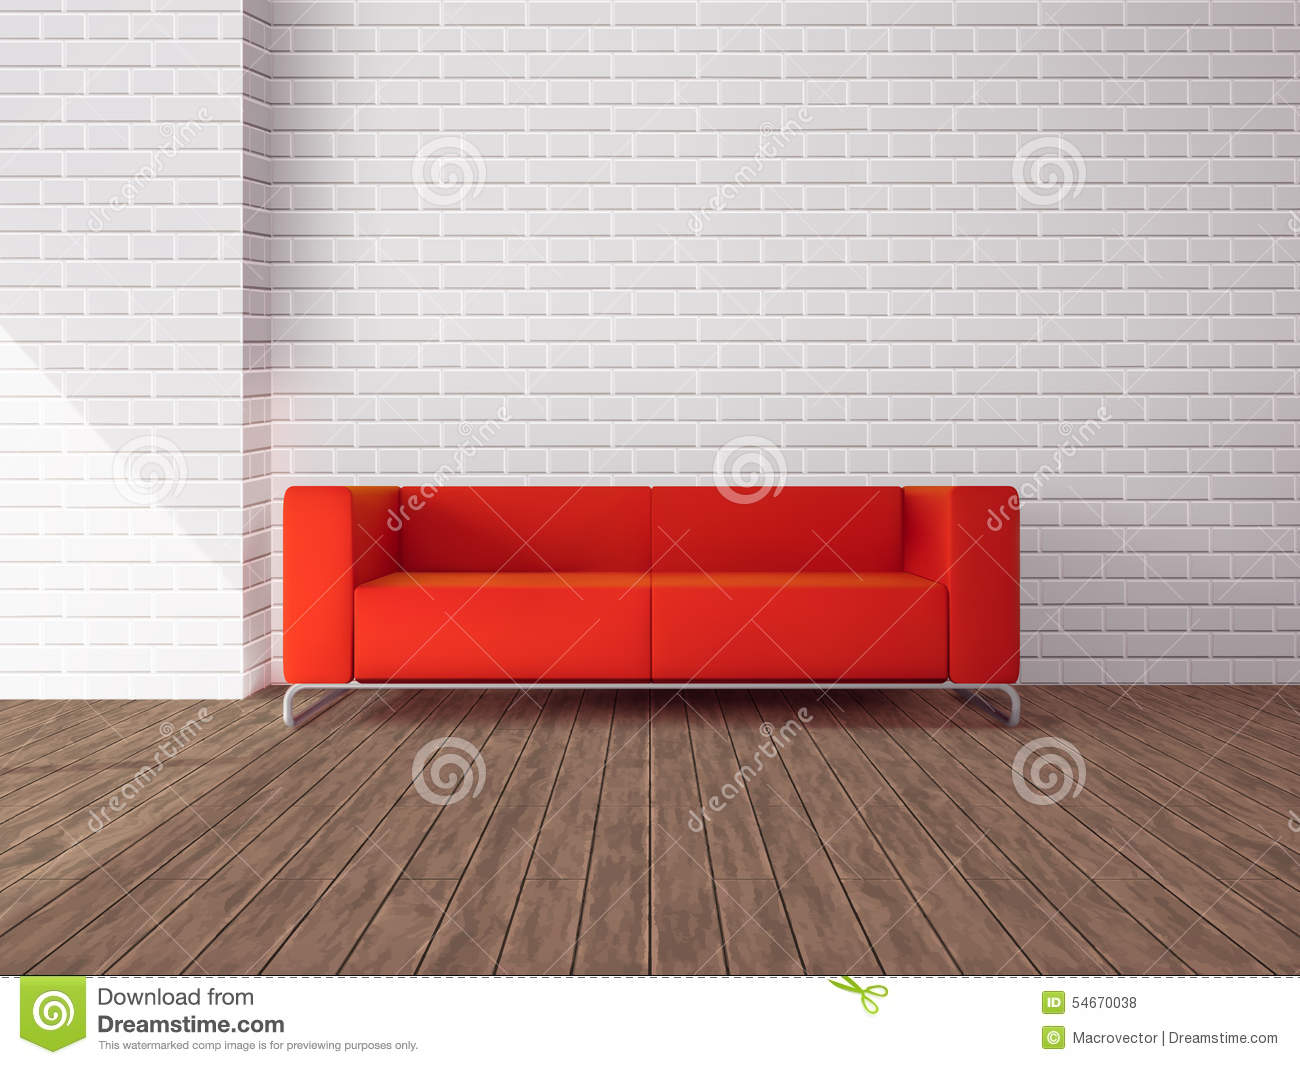 rotes sofa im raum vektor abbildung bild von dekorativ 54670038. Black Bedroom Furniture Sets. Home Design Ideas